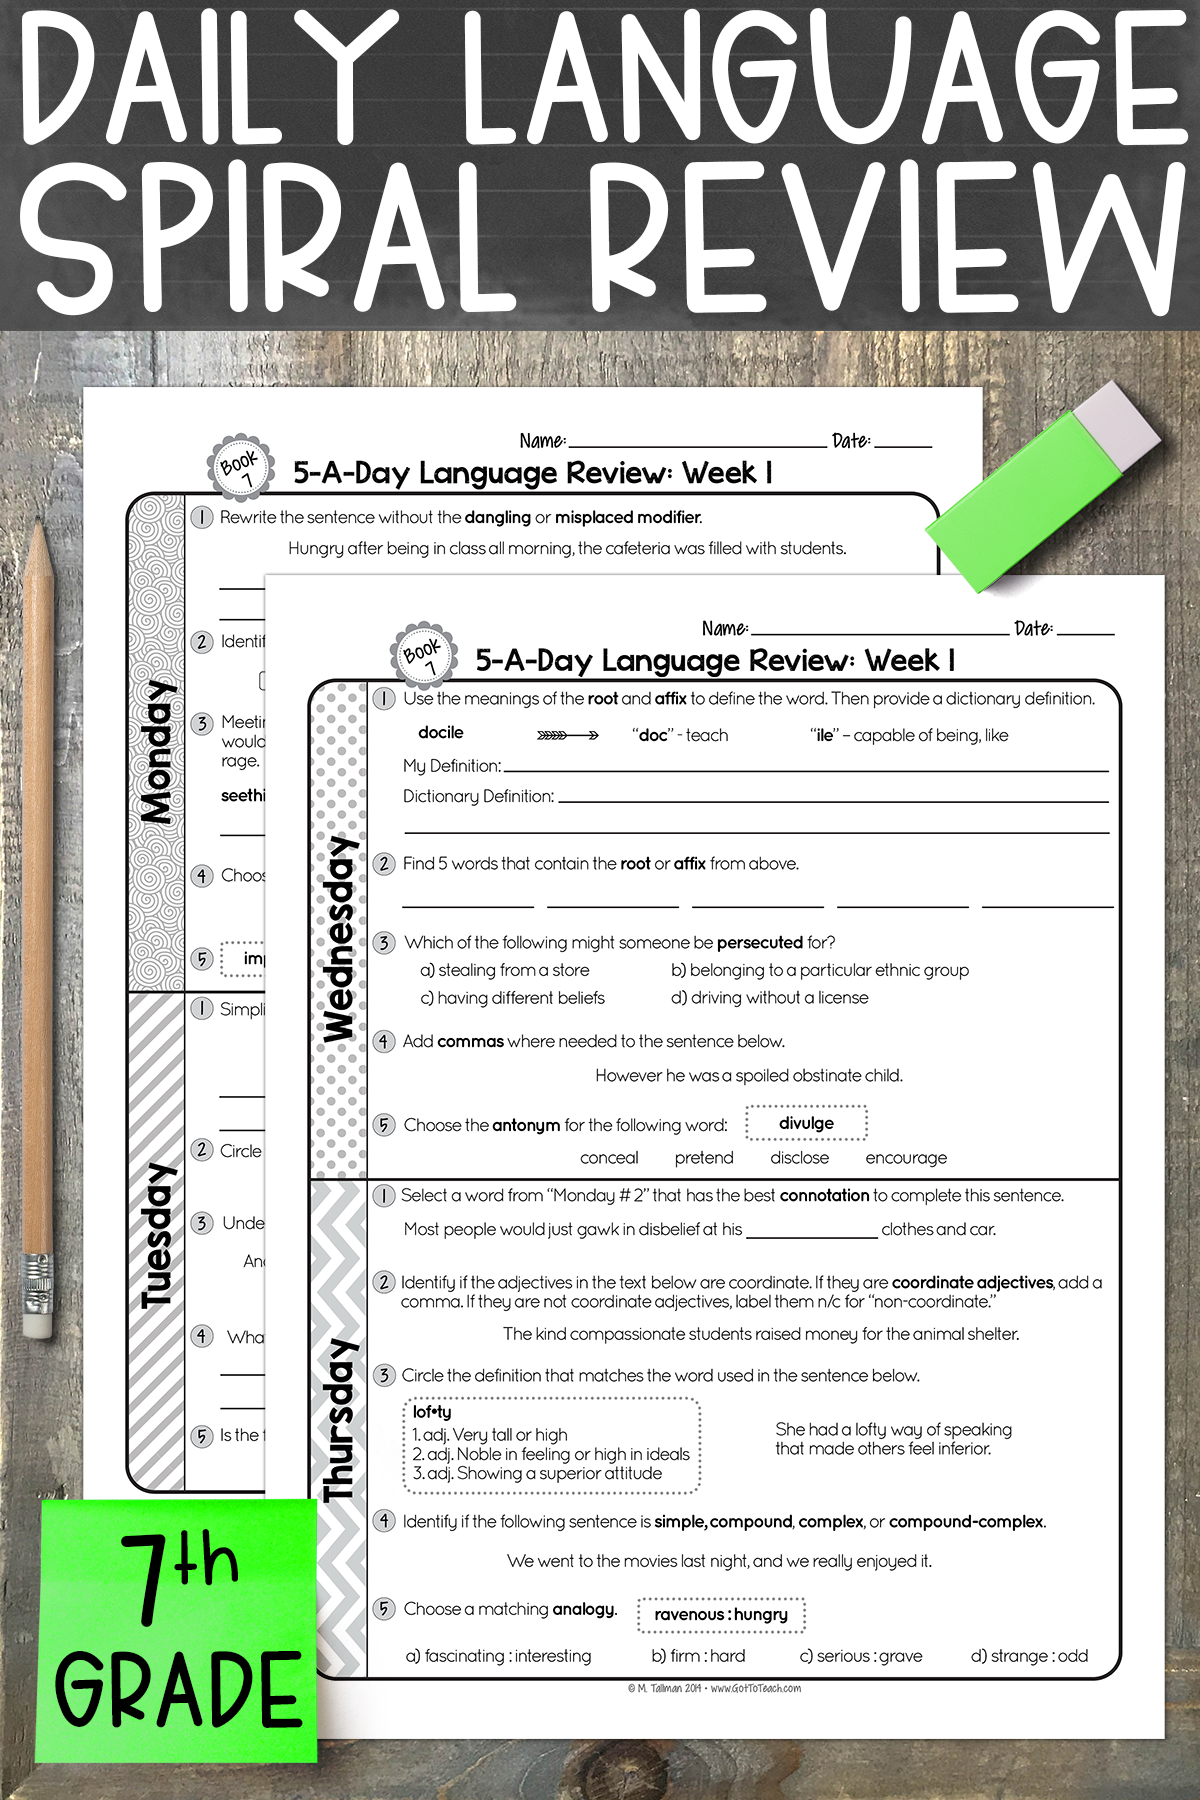 medium resolution of 7th Grade Daily Language Spiral Review • Teacher Thrive   Spiral review